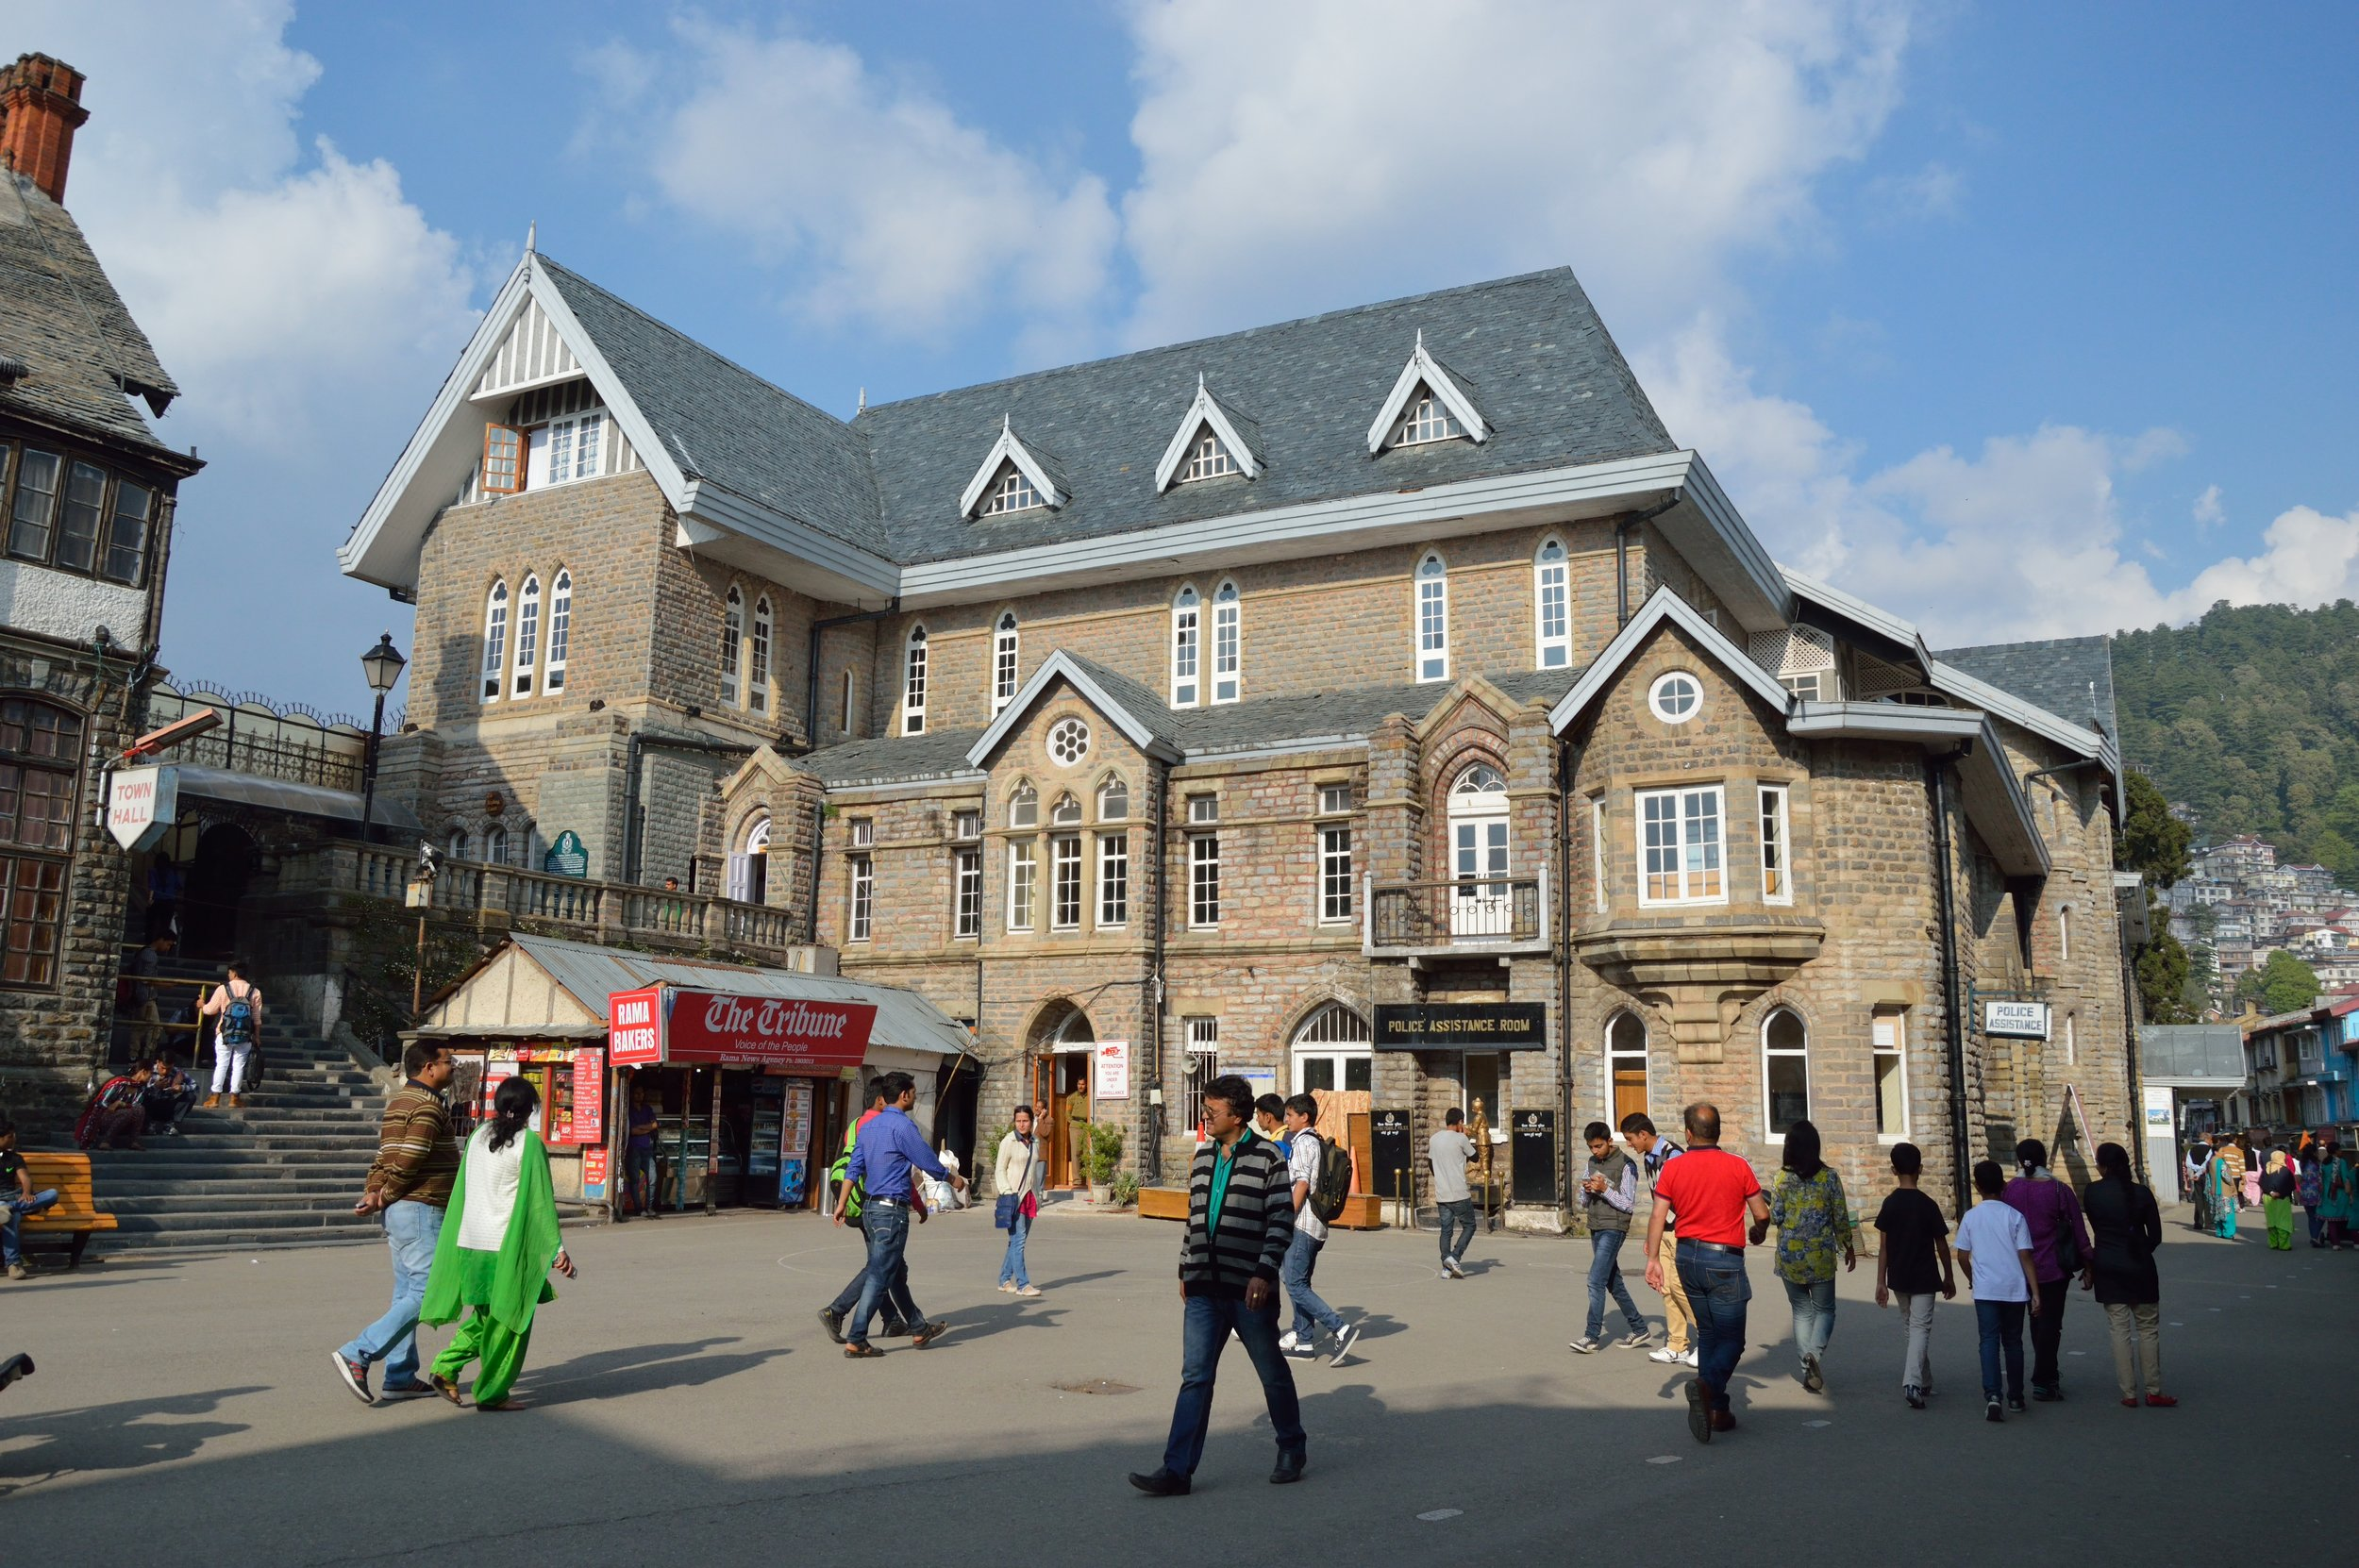 Gaiety_Theater_-_Mall_Road_-_Shimla_2014-05-07_1290.JPG